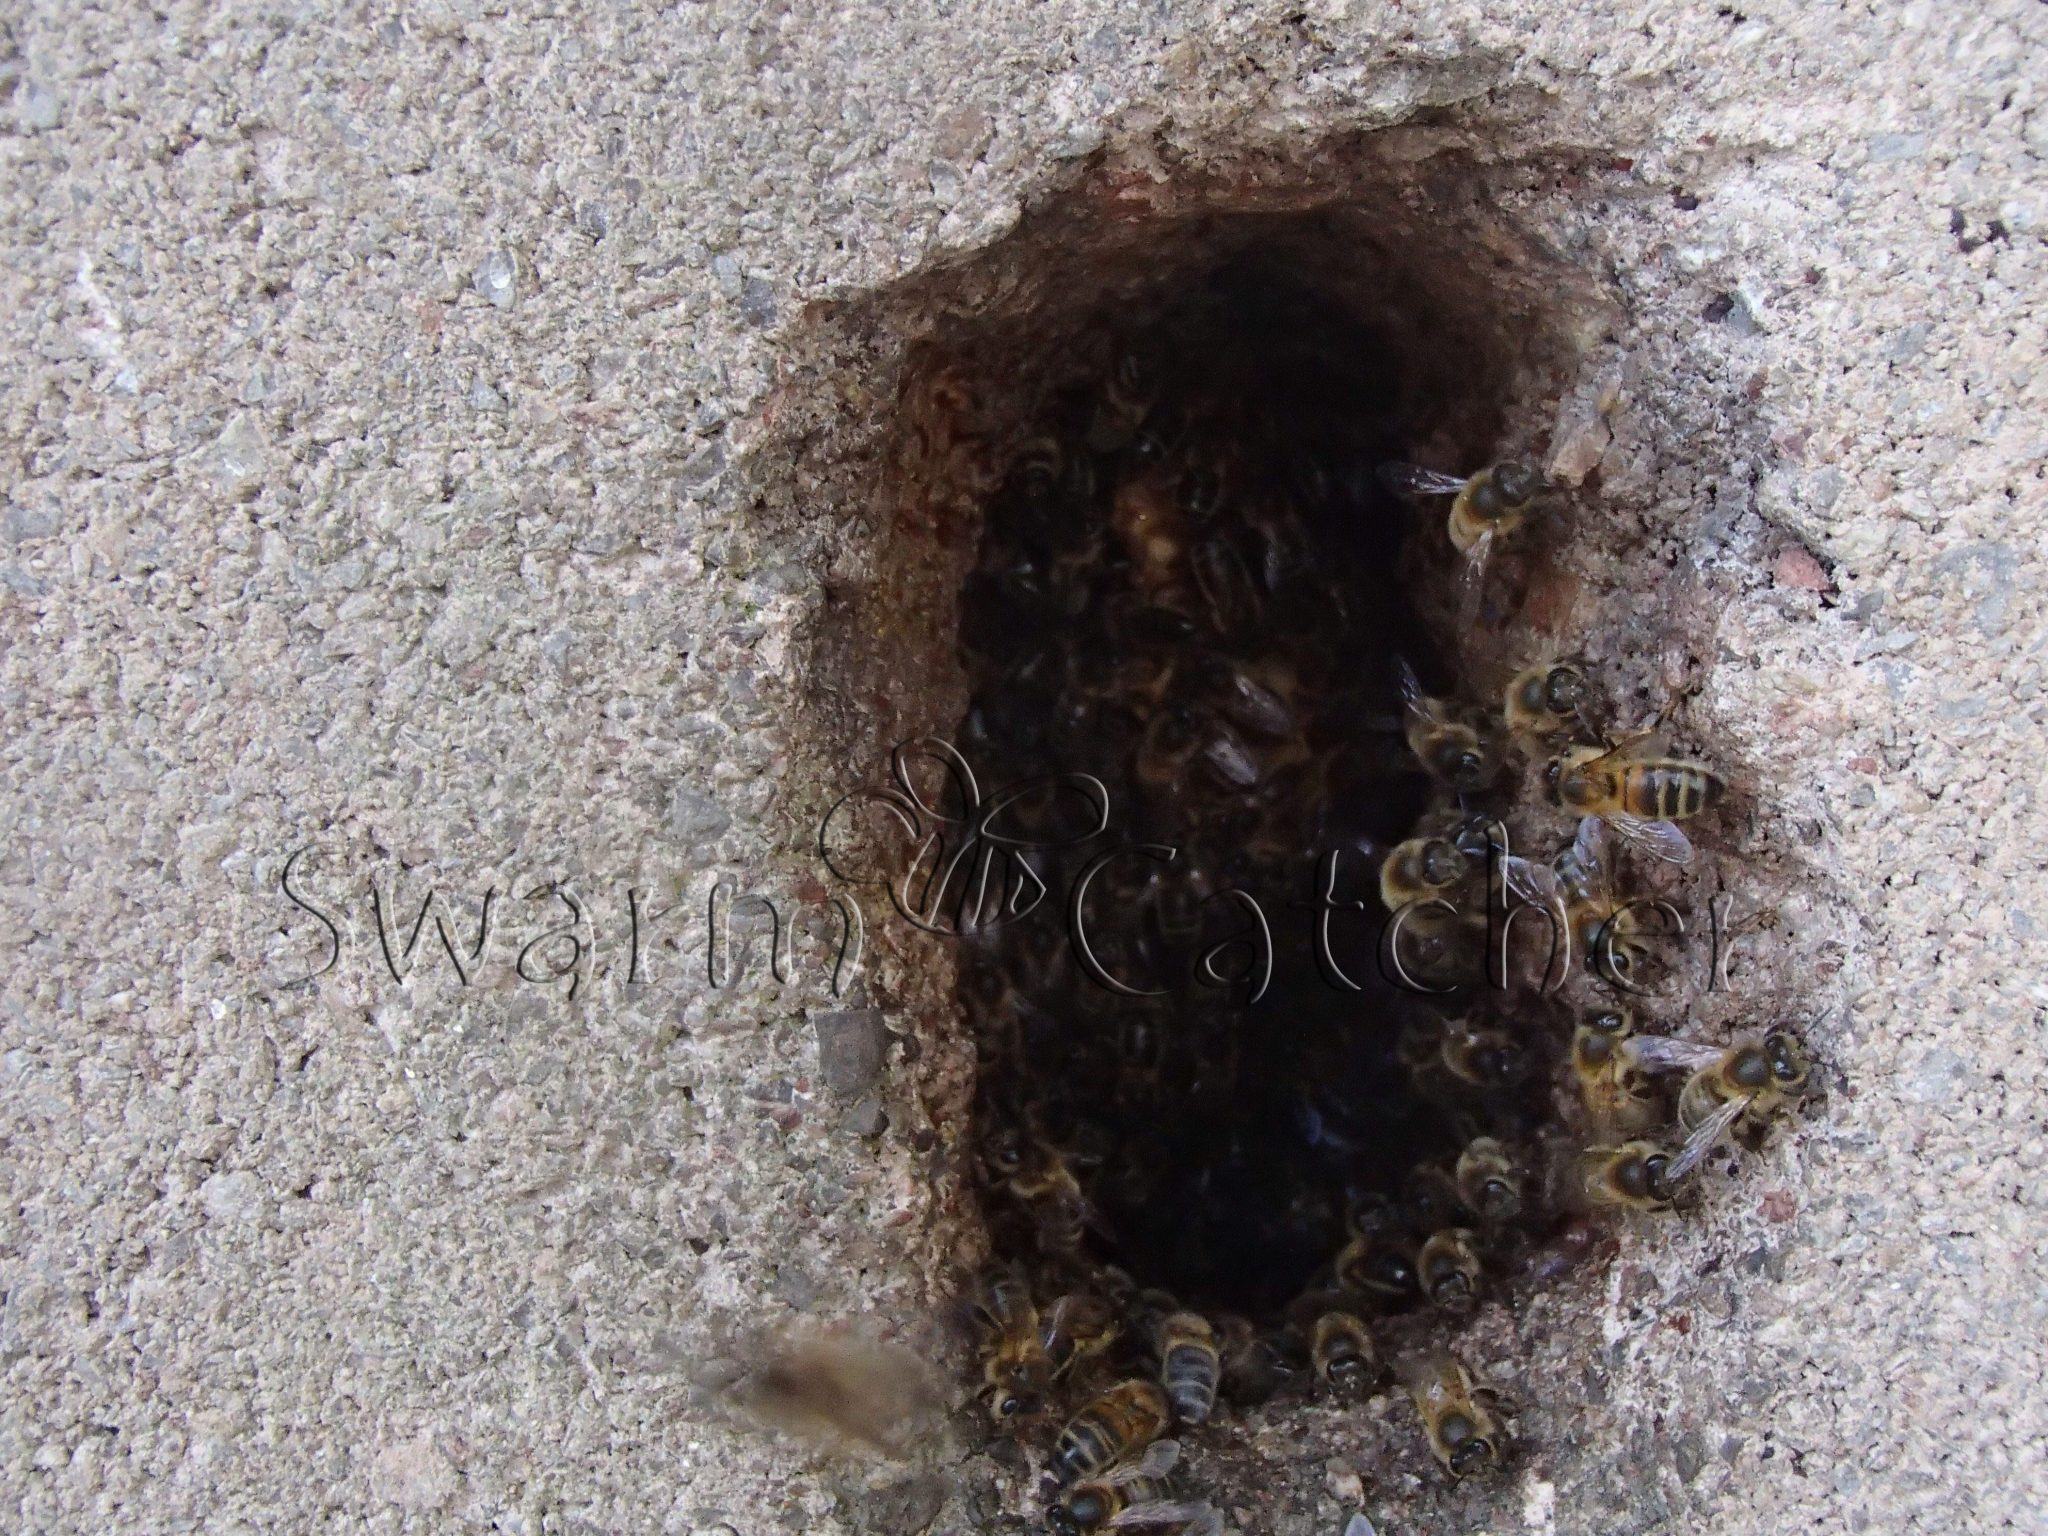 Bees in walls - Entrance to honey bee nest in blocked up window wall